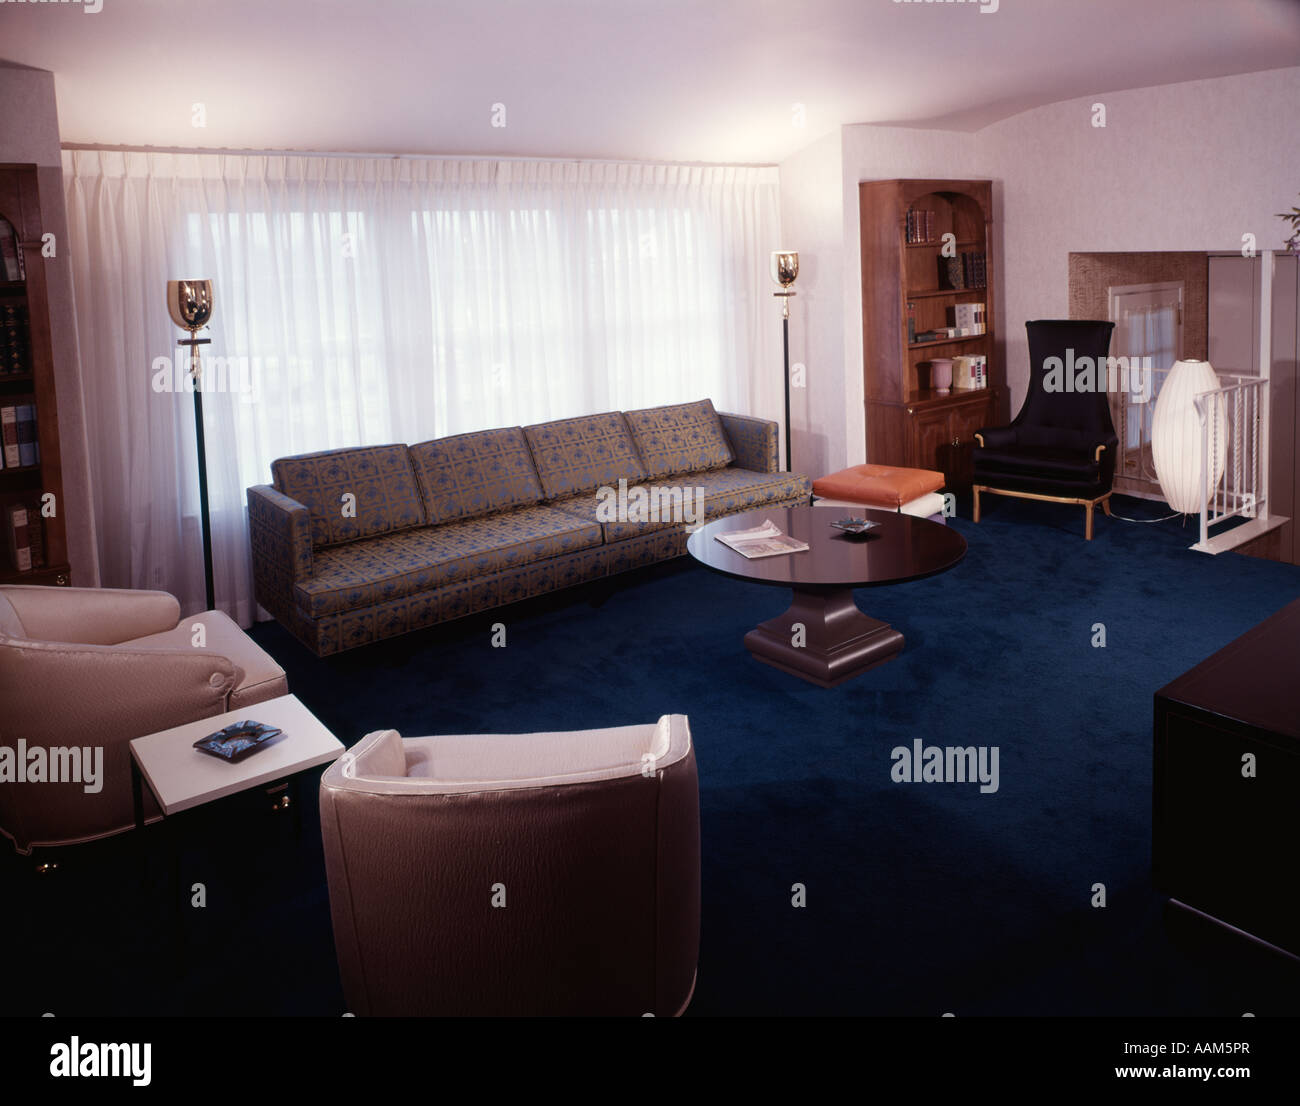 1960s 1970s LIVING ROOOM INTERIOR INSIDE   Stock Image